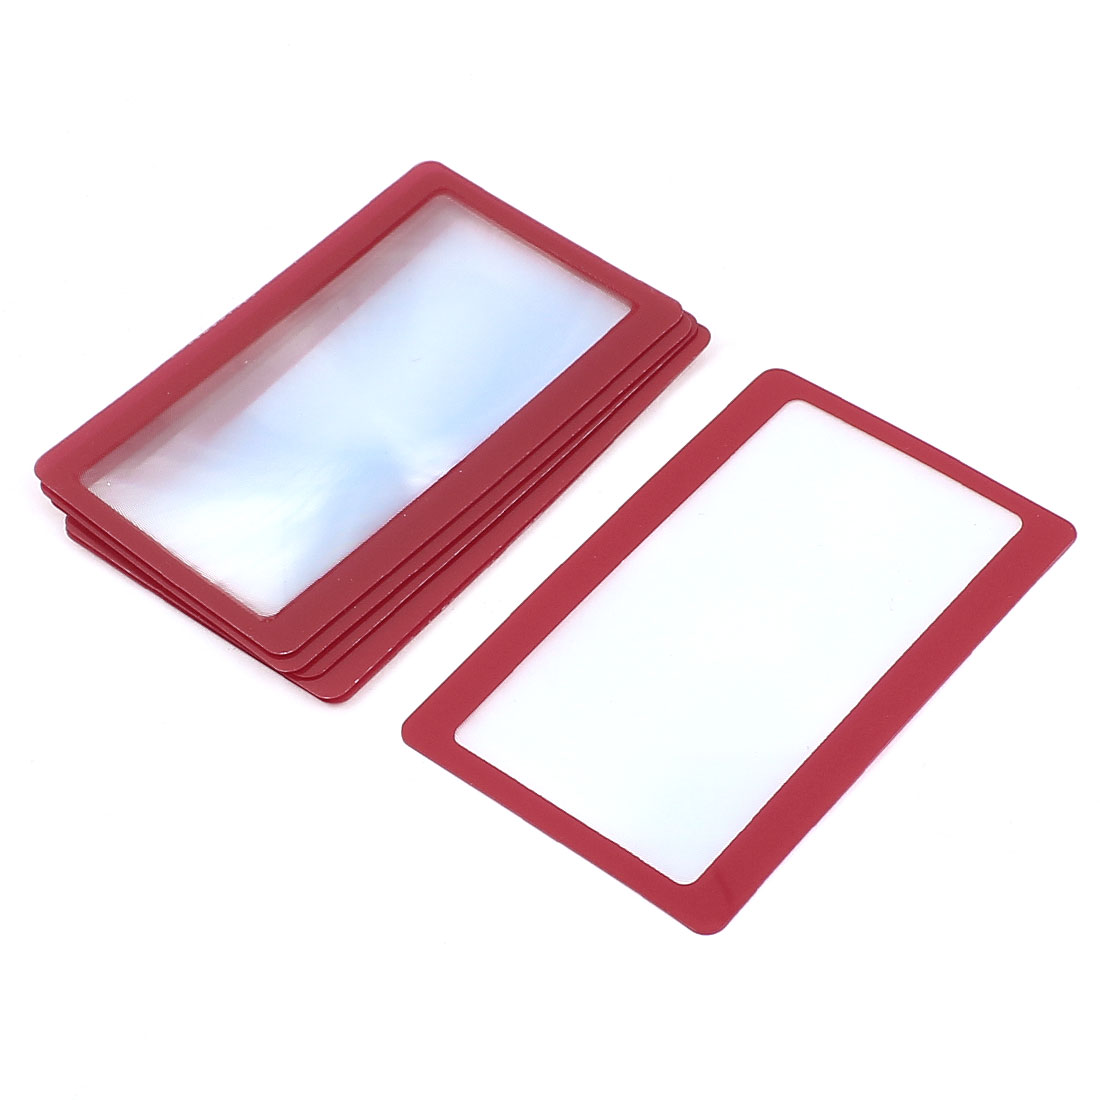 6 Pieces Red Frame Credit Card Reading Magnifier 3x Magnifying Wallet Loupe Lens